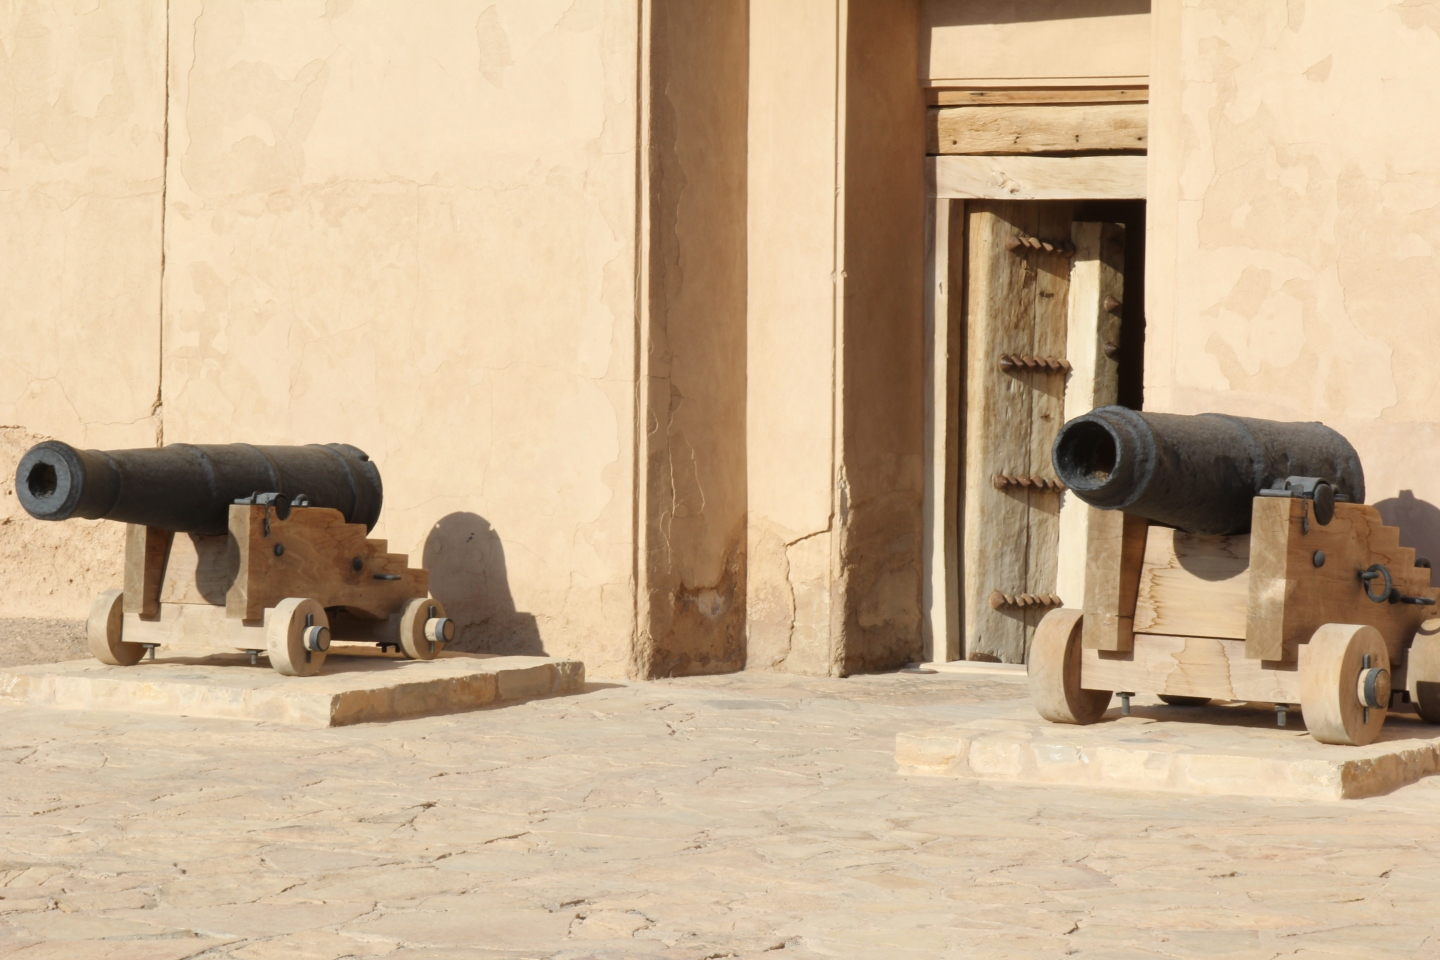 Cannons in Oman 2014